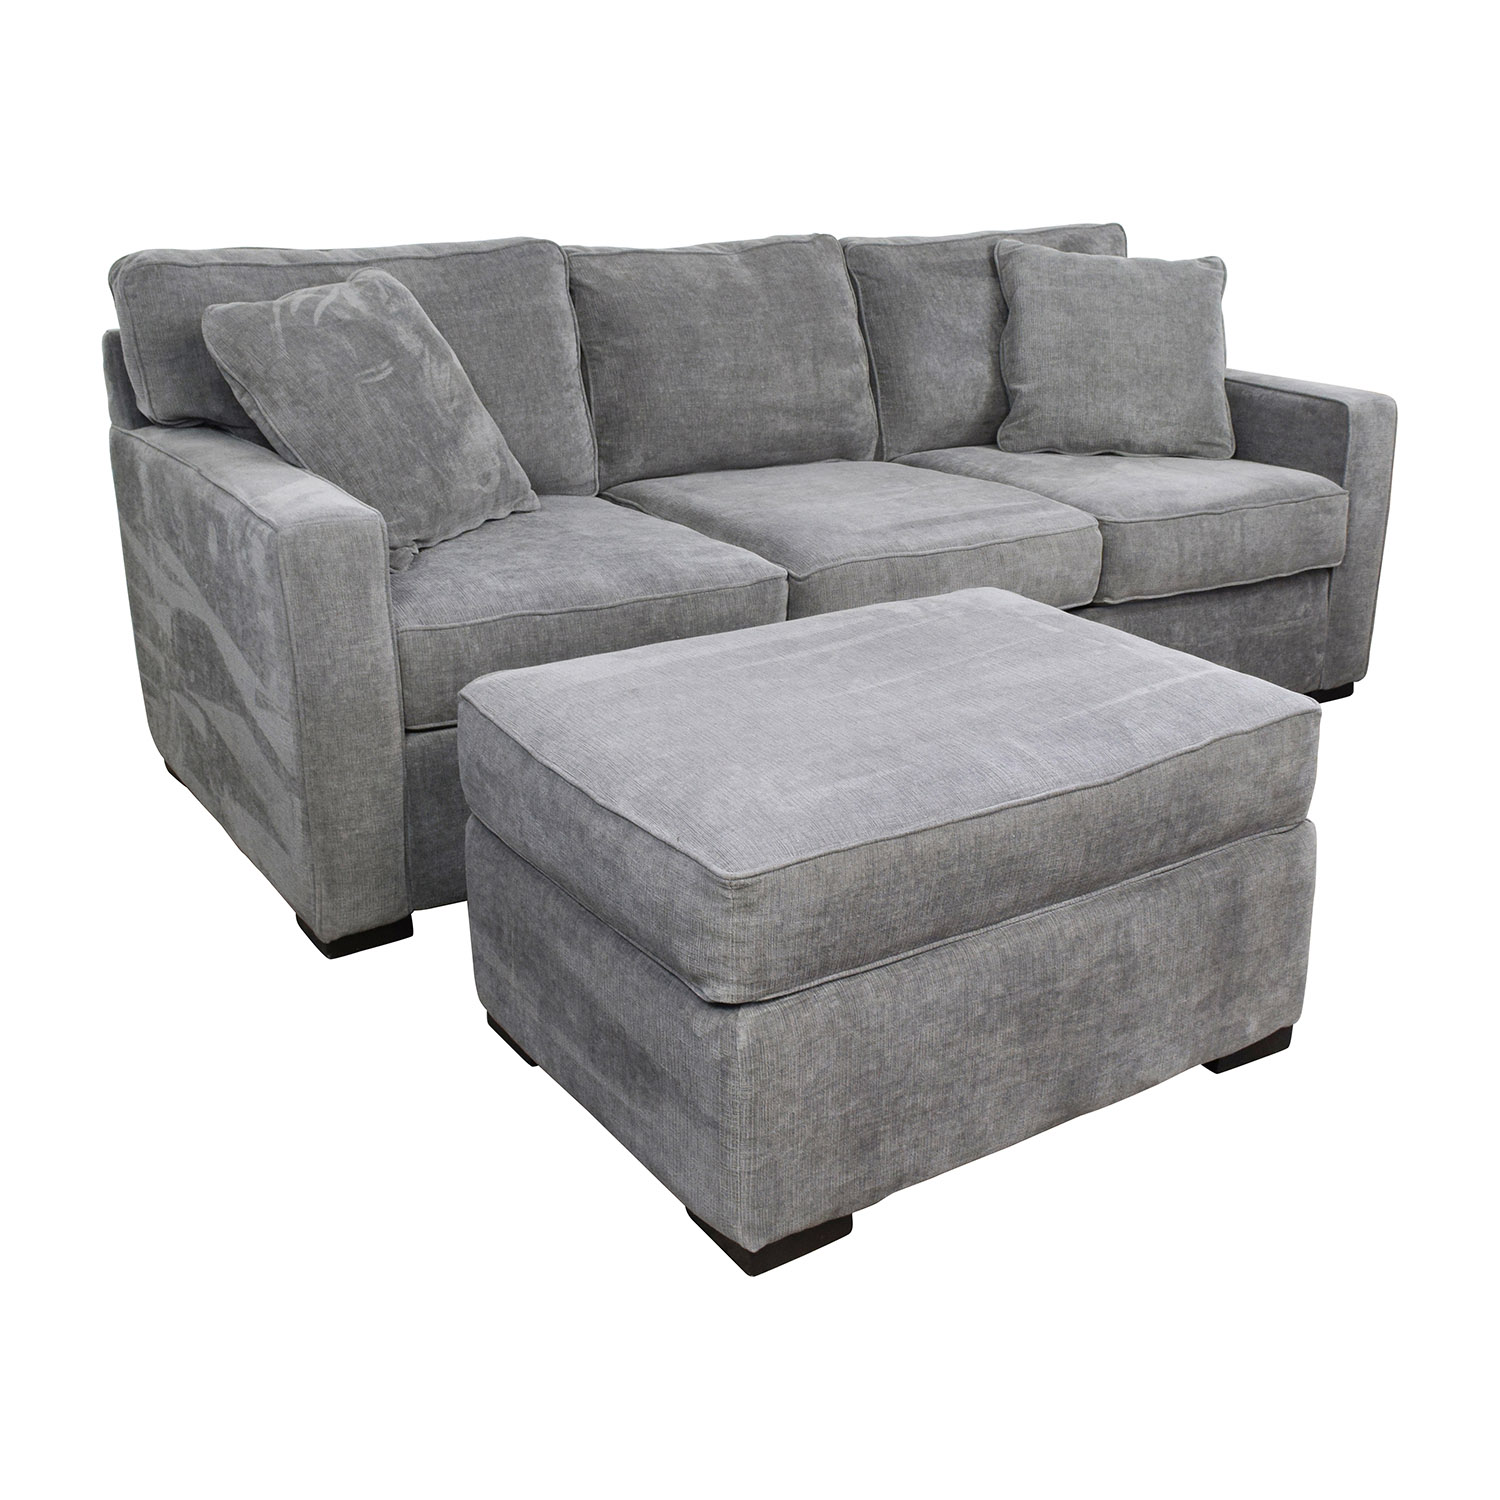 Ottoman Sofas Sofa Bed With Memsaheb TheSofa